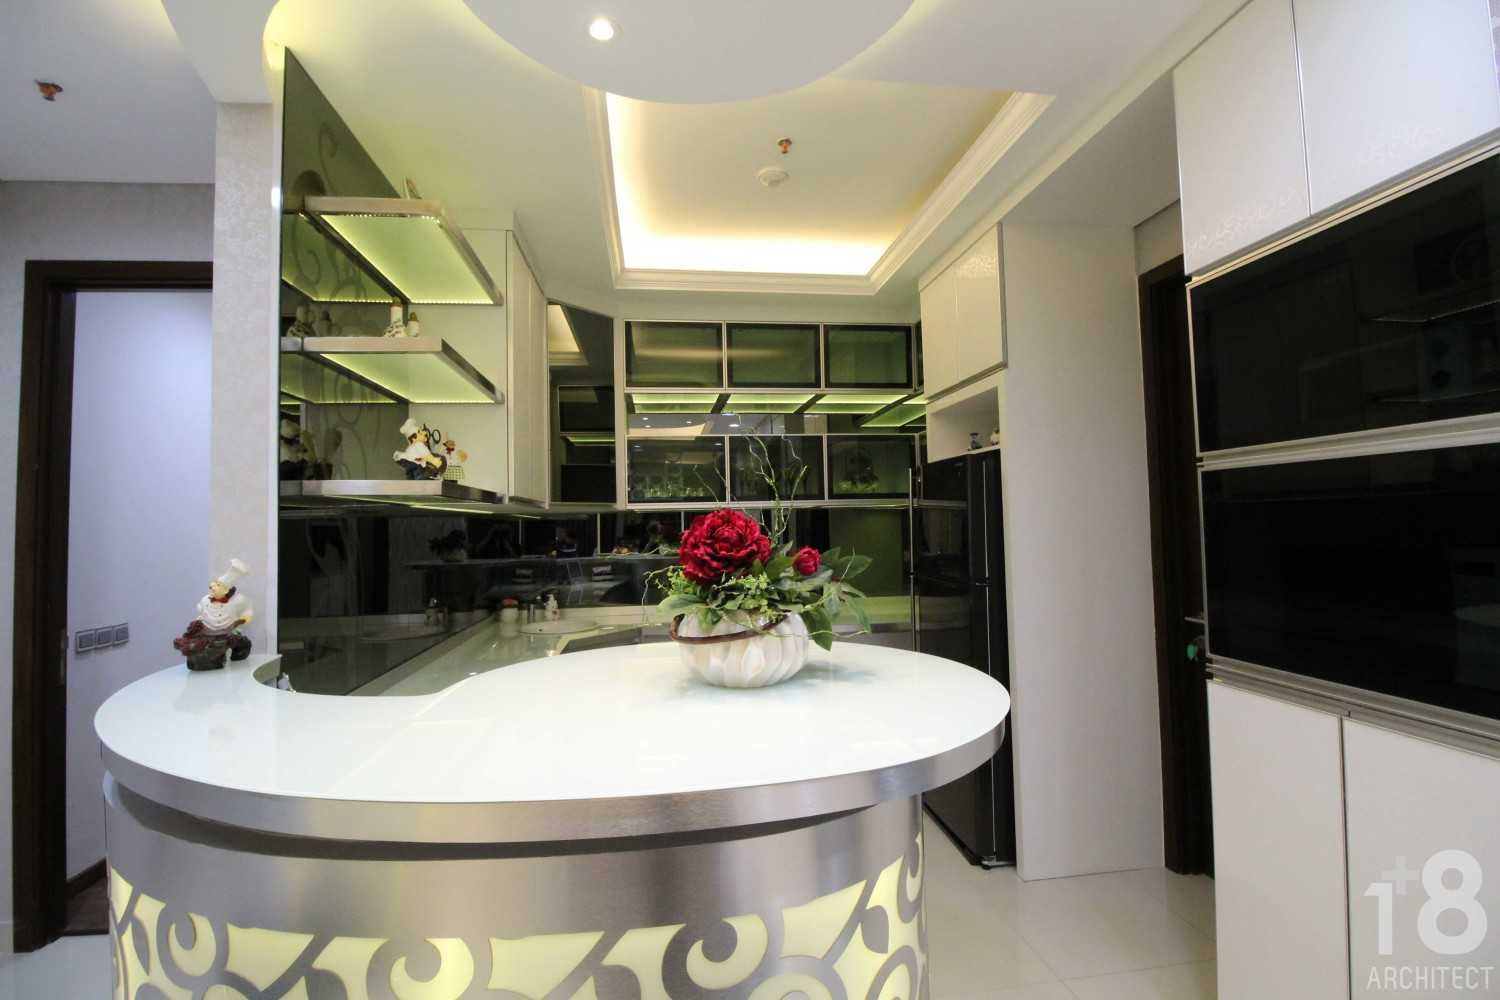 1+8 Architect St. Moritz, Presidential Tower Suite Room Jakarta, Indonesia Jakarta, Indonesia Pantry Modern 23004